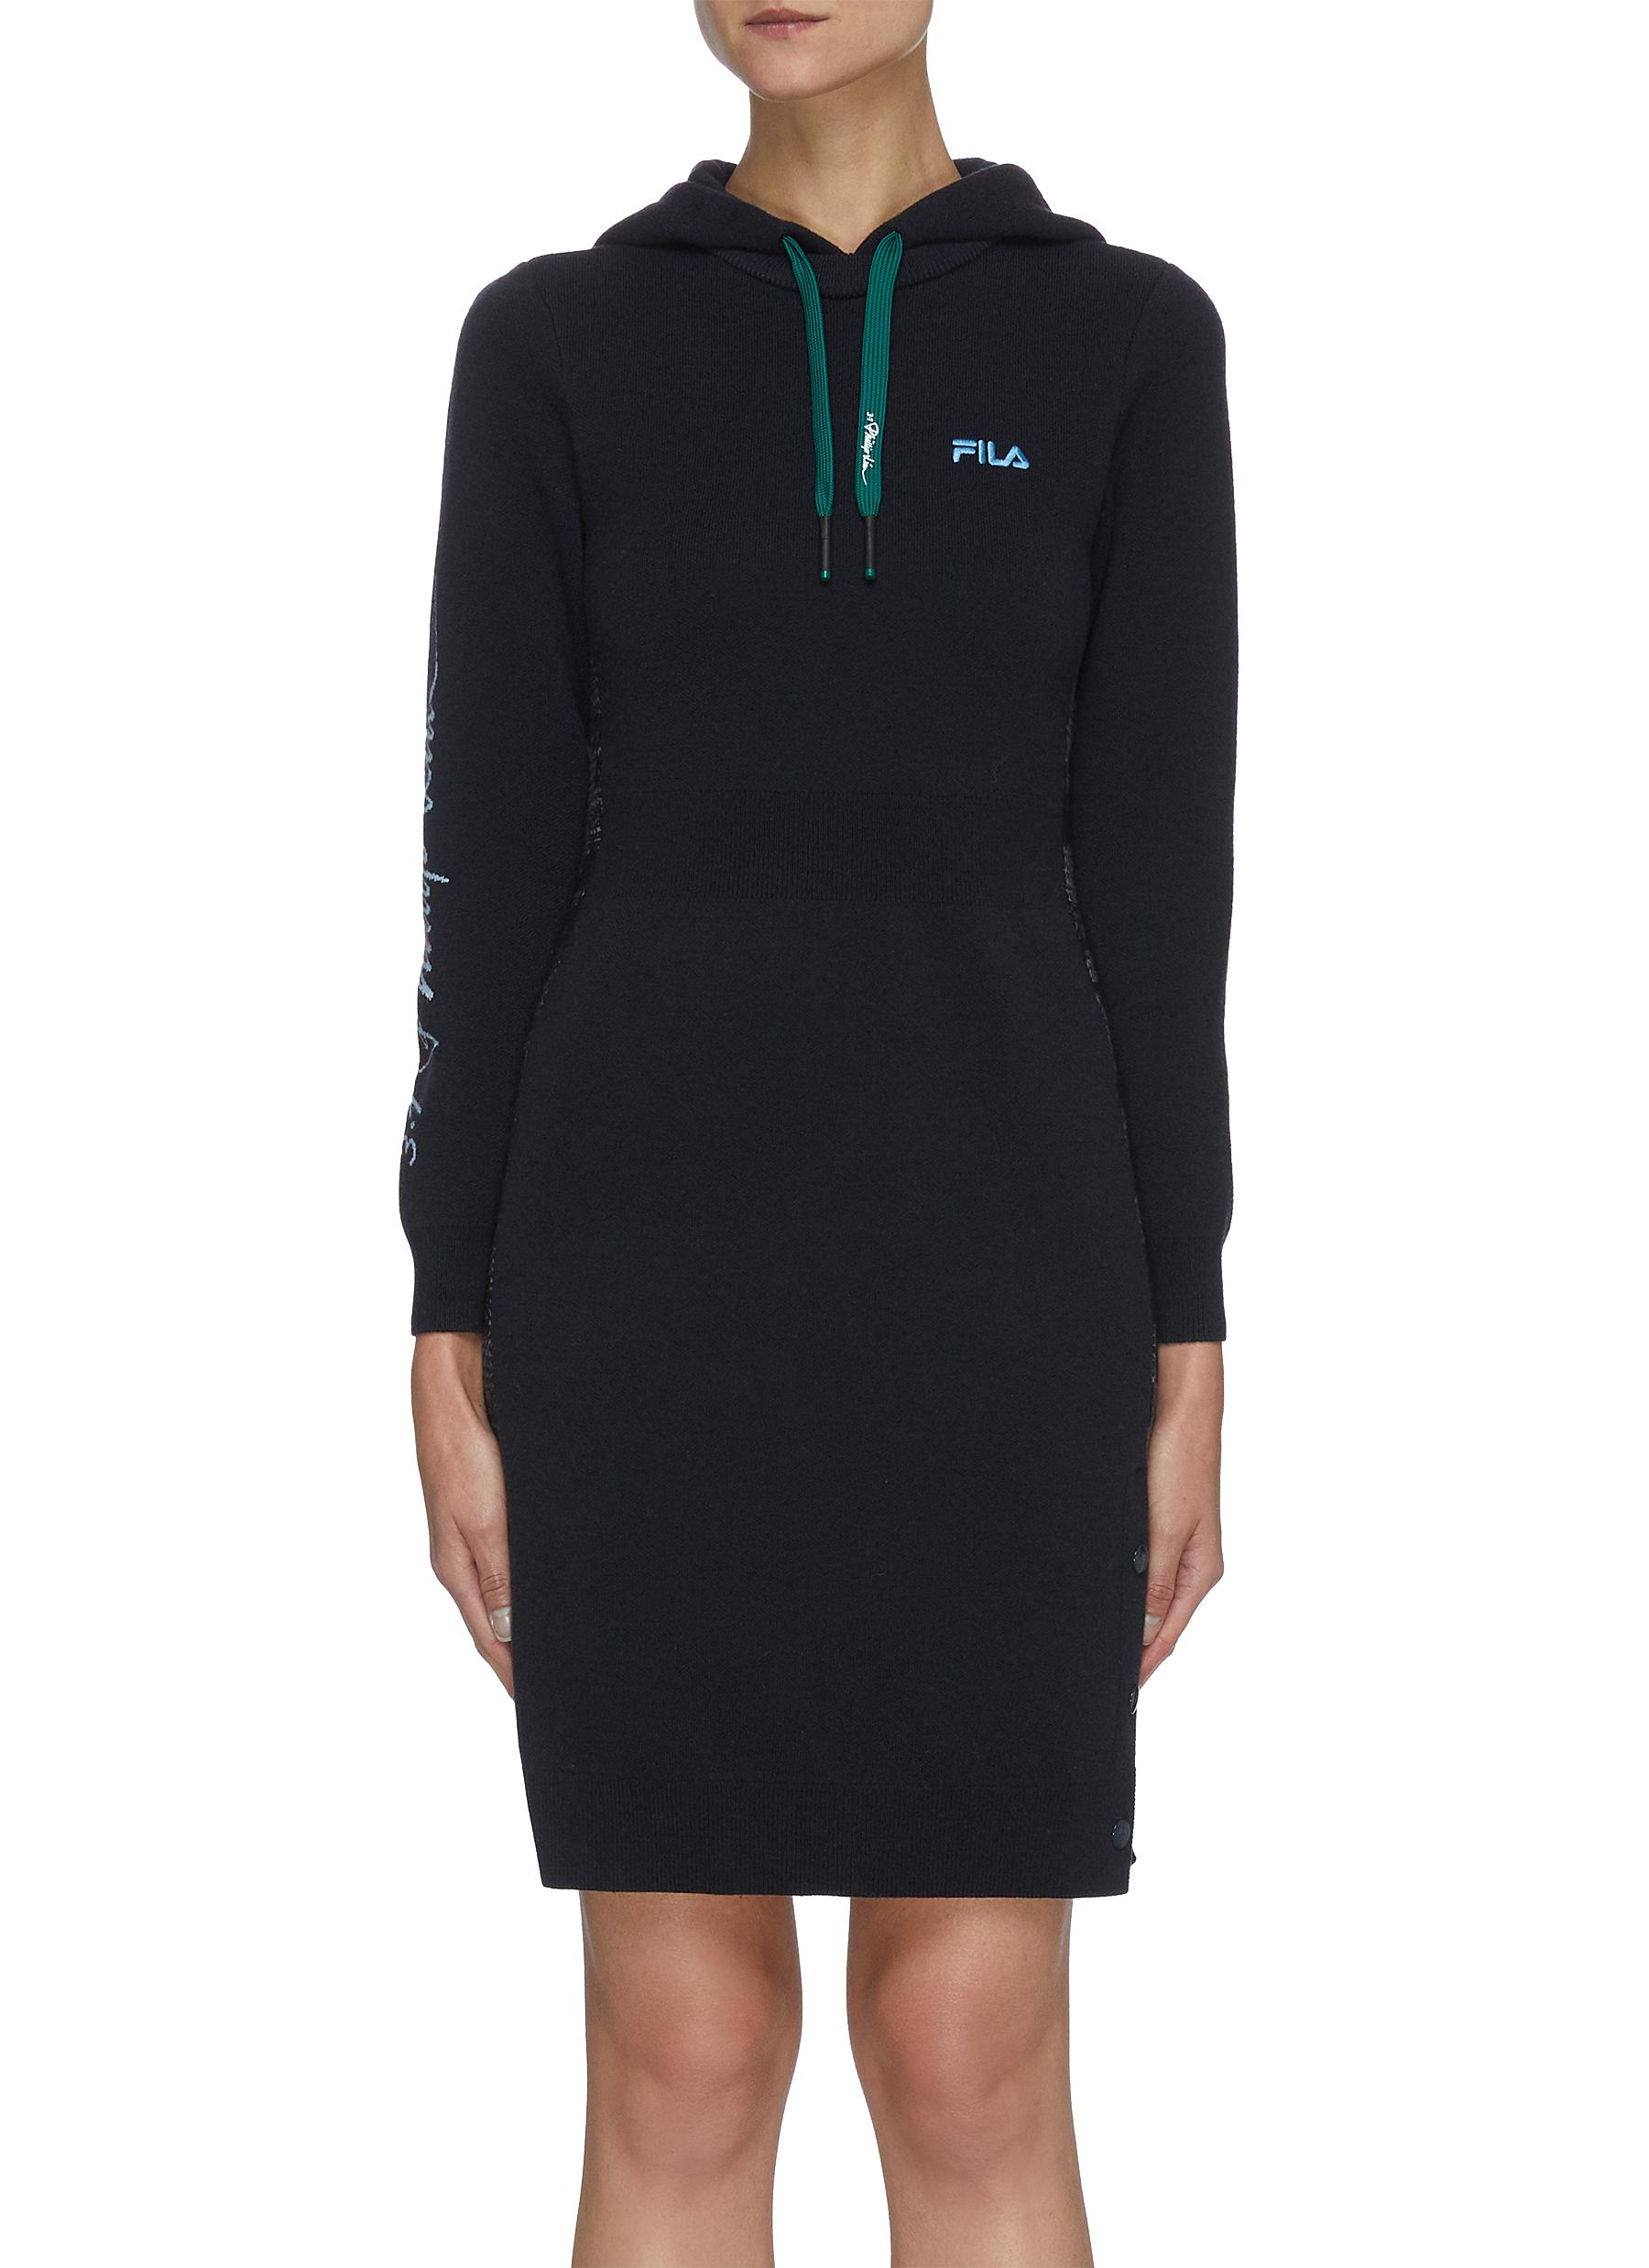 Logo Sleeve Side Trim Drawstring Hood Dress - FILA X 3.1 PHILLIP LIM - Modalova